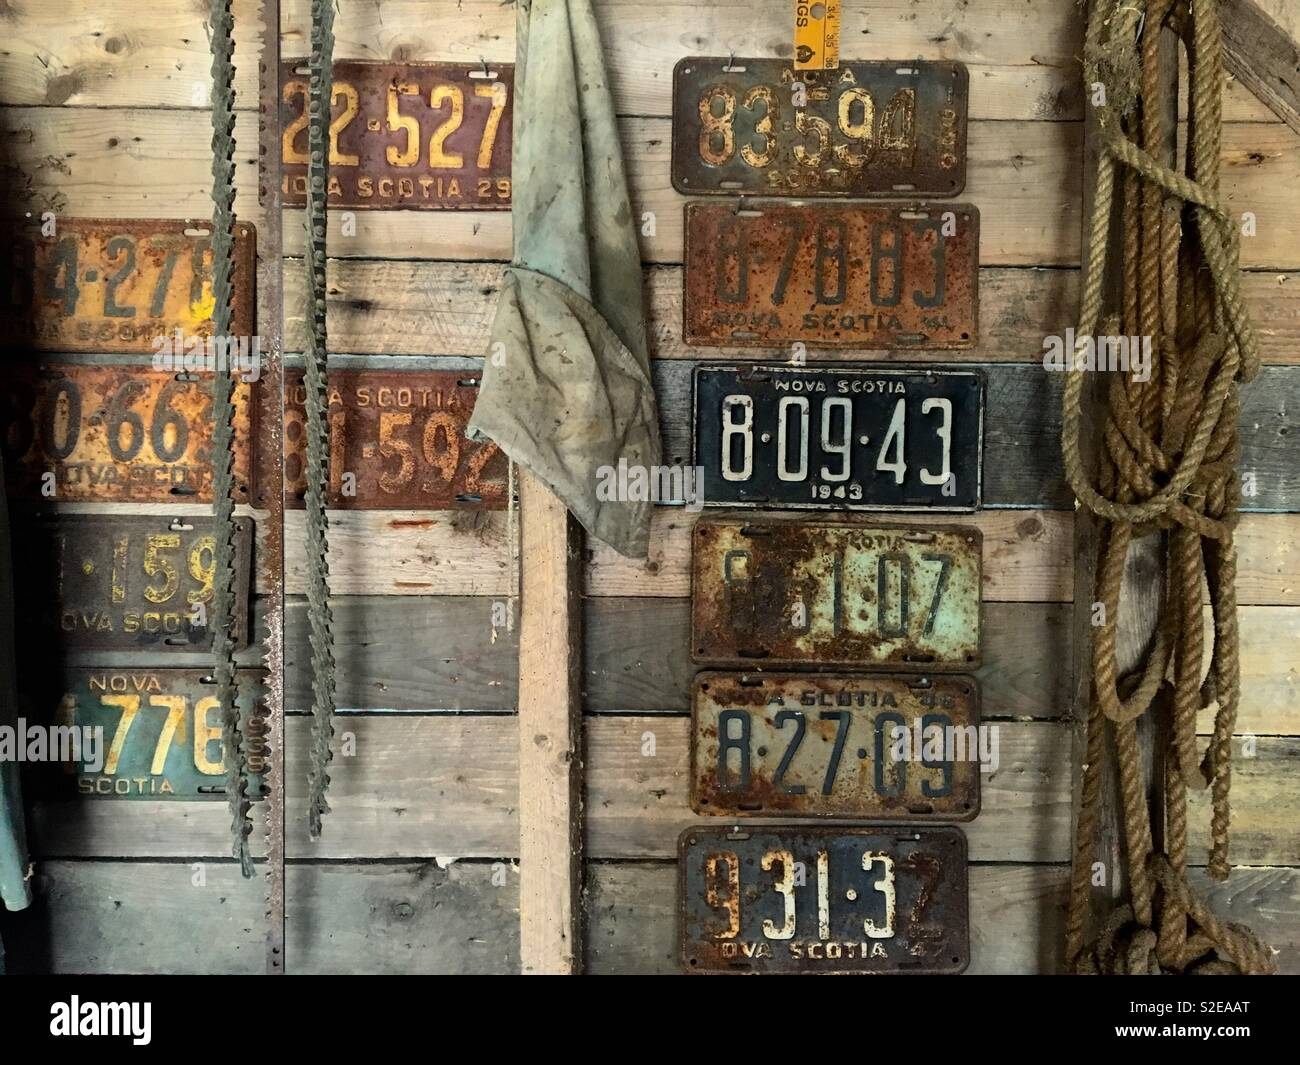 Old number plates of Nova Scotia Canada in an old wooden shed - Stock Image